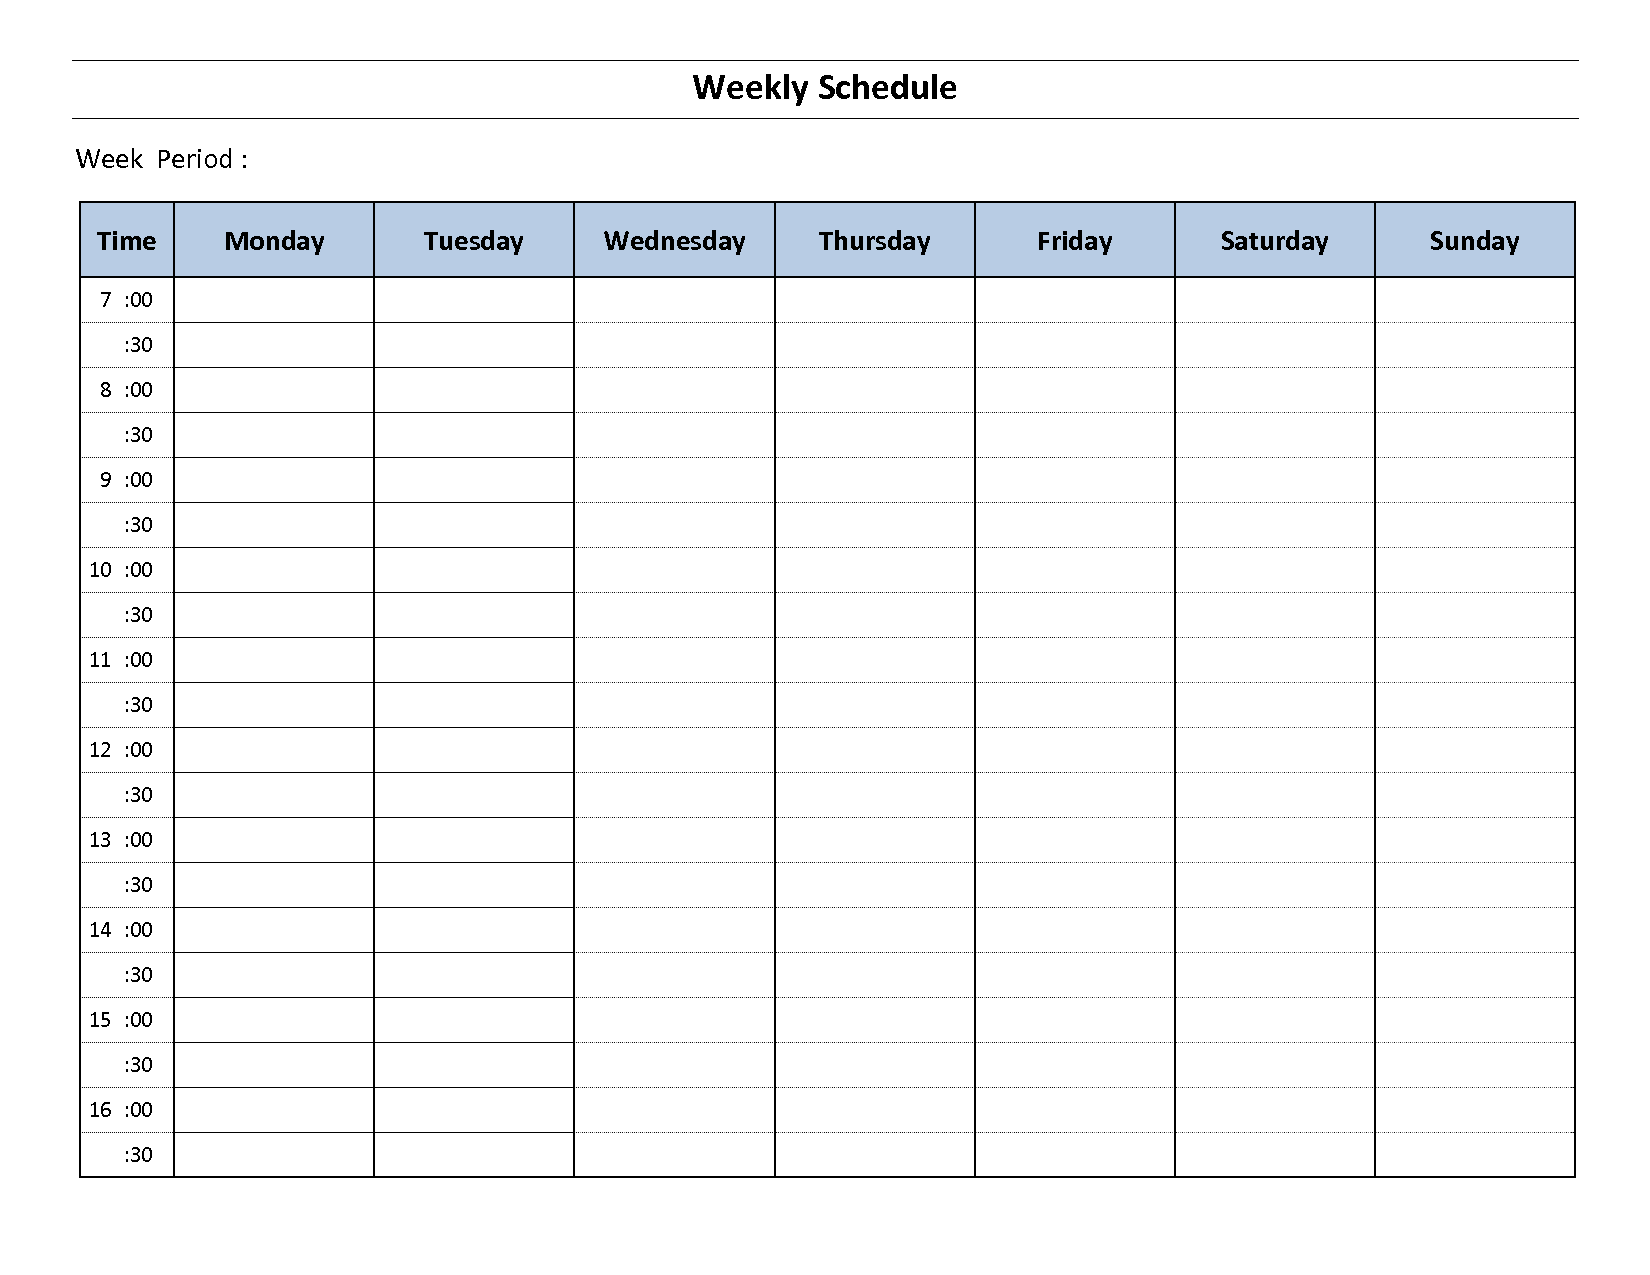 Weekly Calendar Schedule : Top resources to get free weekly schedule templates